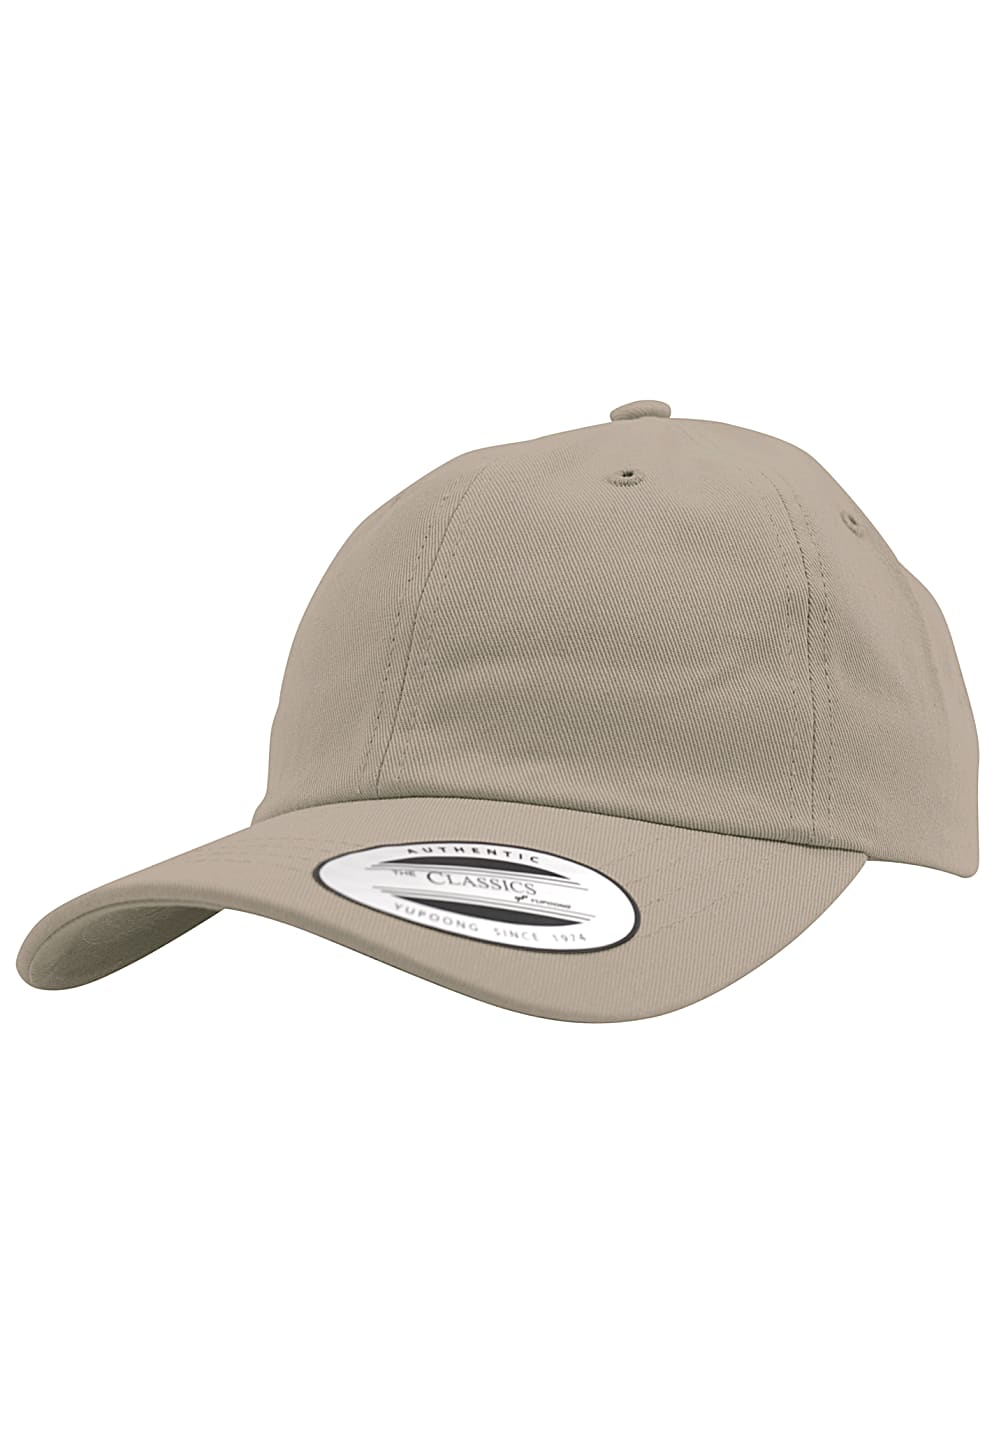 Flexfit Low Profile Cotton Twill Snapback Cap - Beige - OneSize